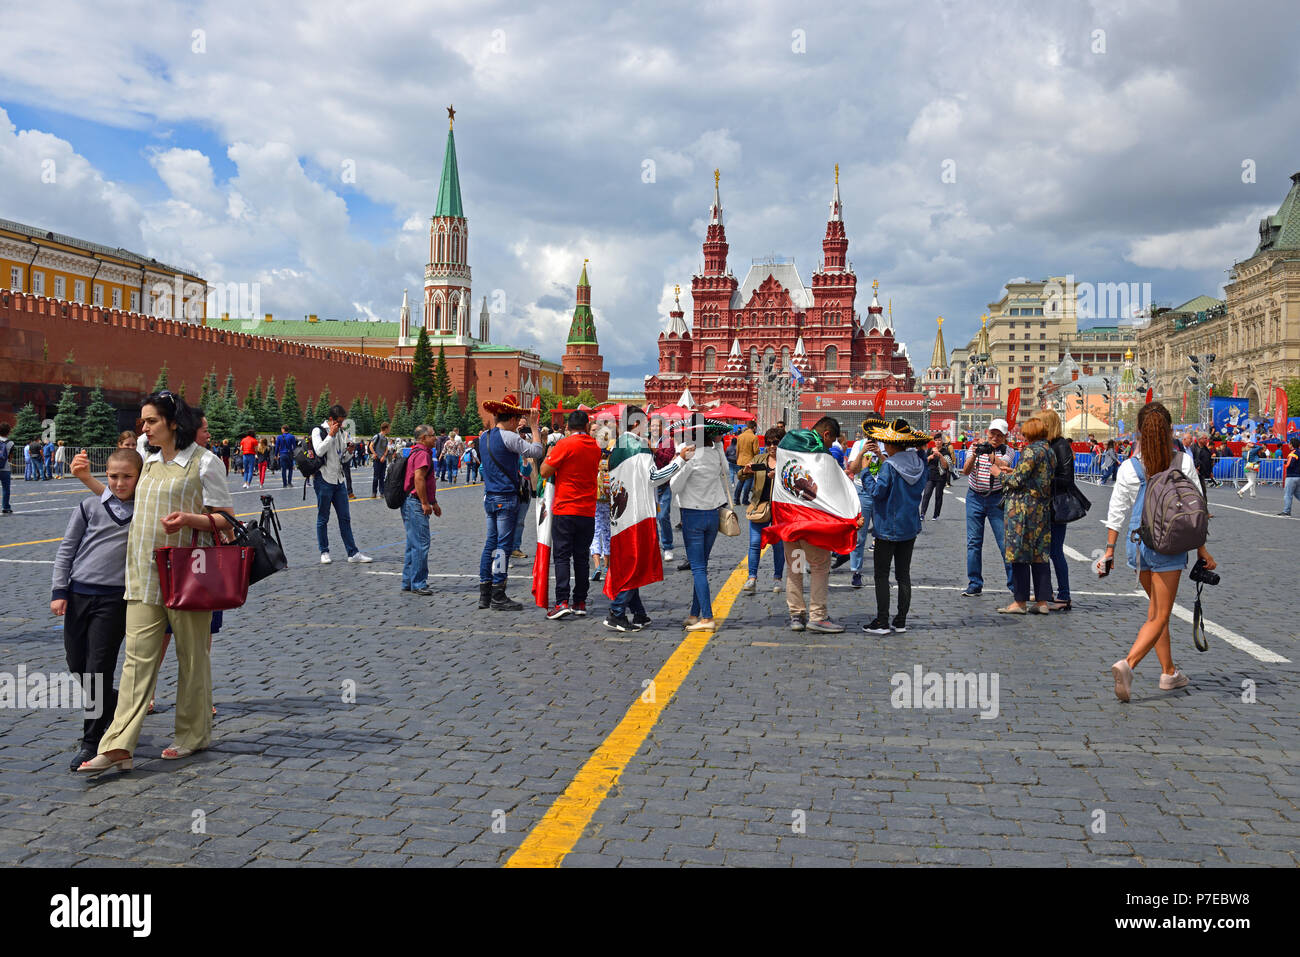 2018 FIFA World Cup. Mexican fans and tourists from different countries on Red Square - Stock Image